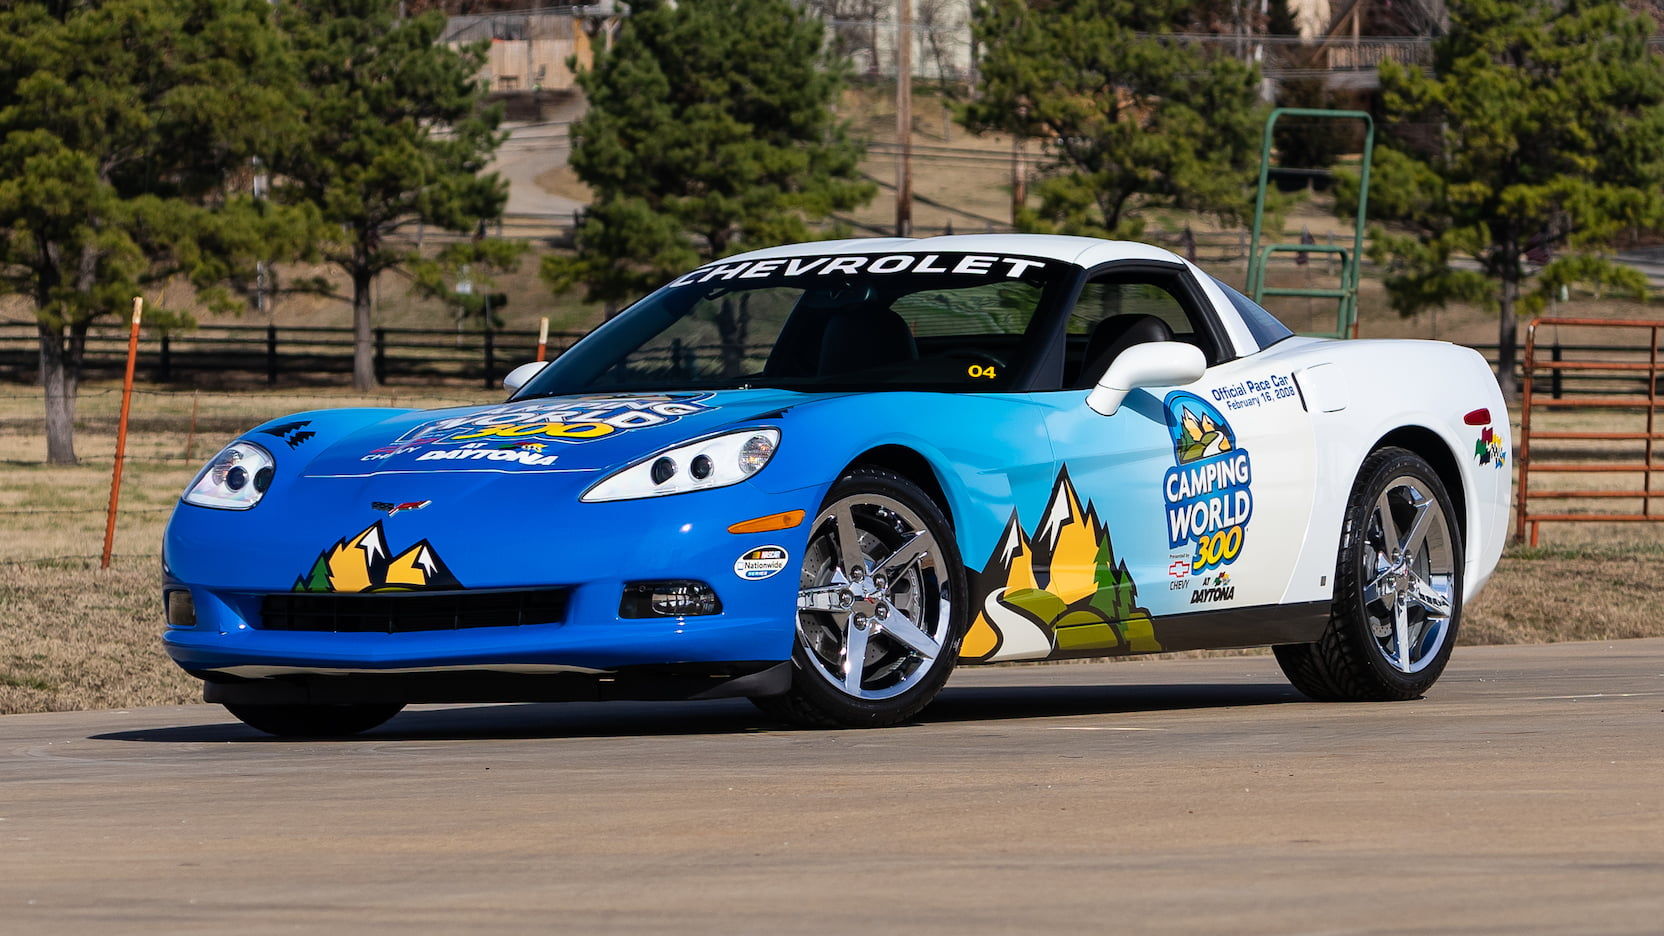 2008 Chevrolet Corvette Daytona Pace Car